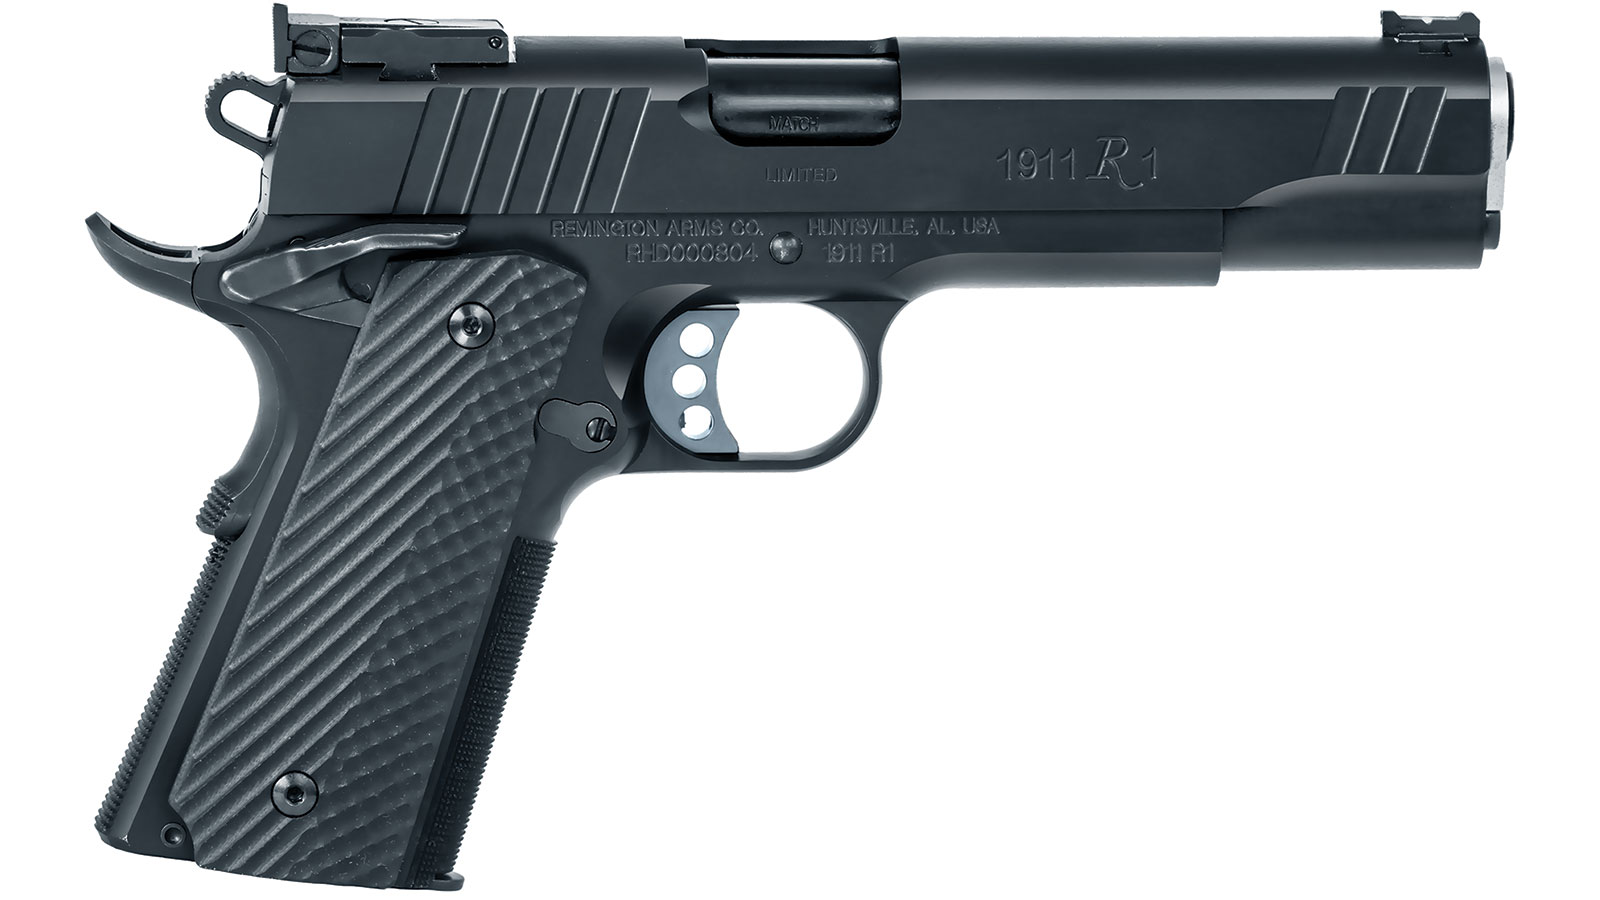 Remington Firearms 96718 1911 R1 Single 9mm Luger 5 9+1 Black G10 Grip Black Stainless Steel in.